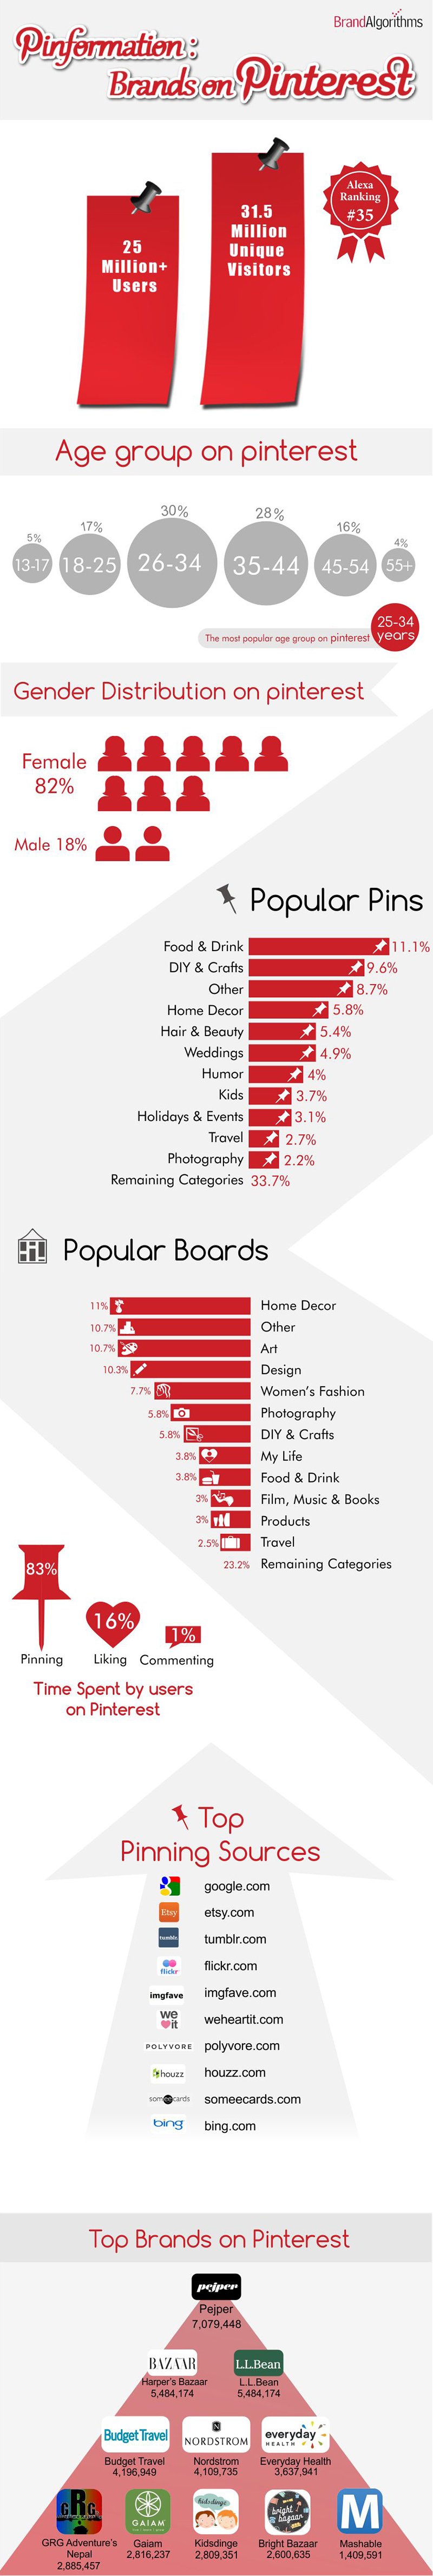 Pinterest and its popularity over interent